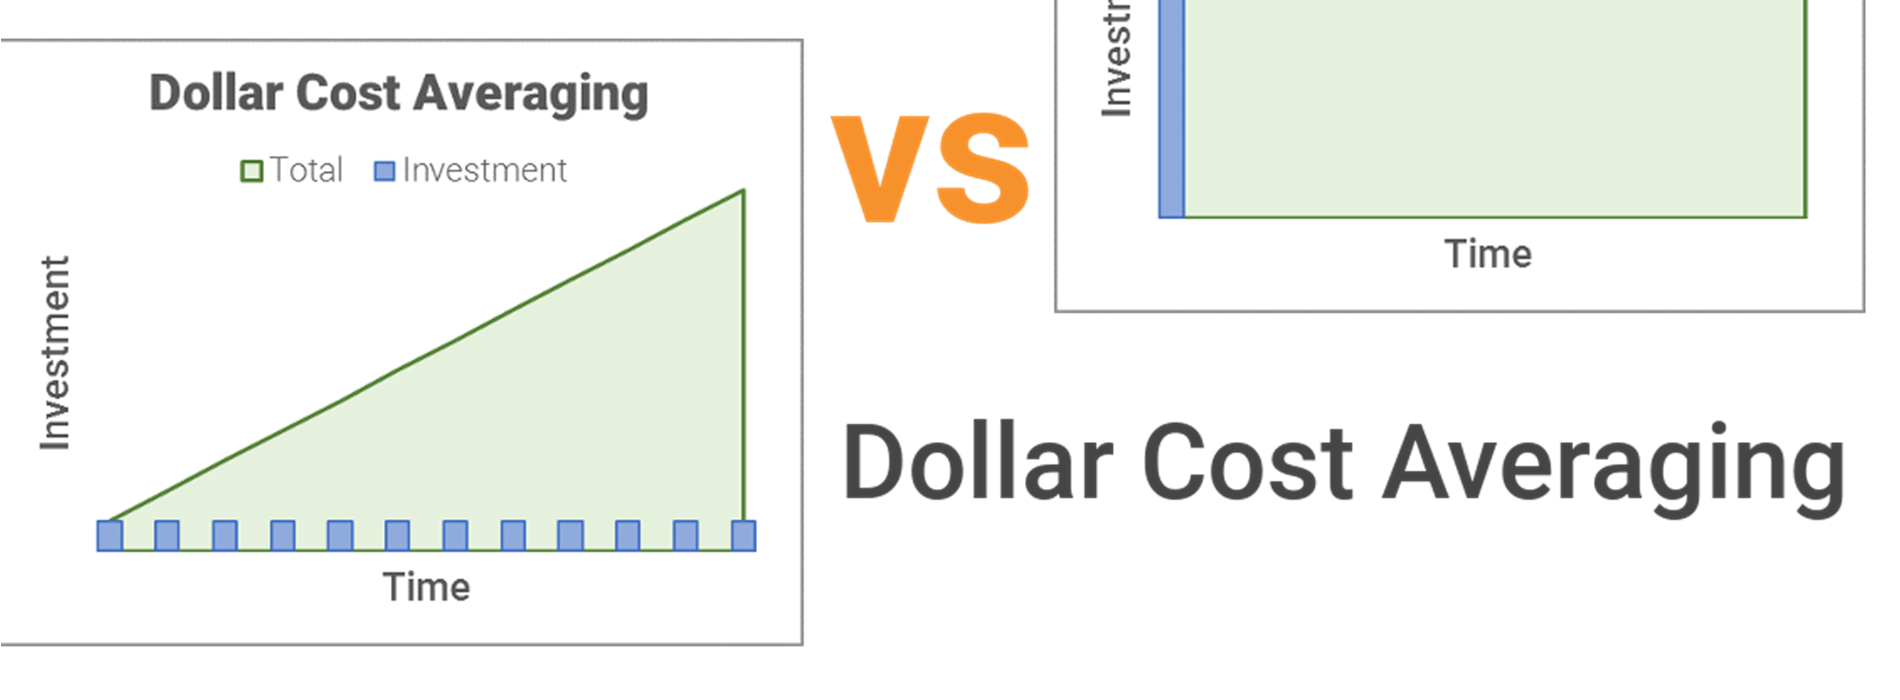 Dollar Cost Averaging Thumbnail